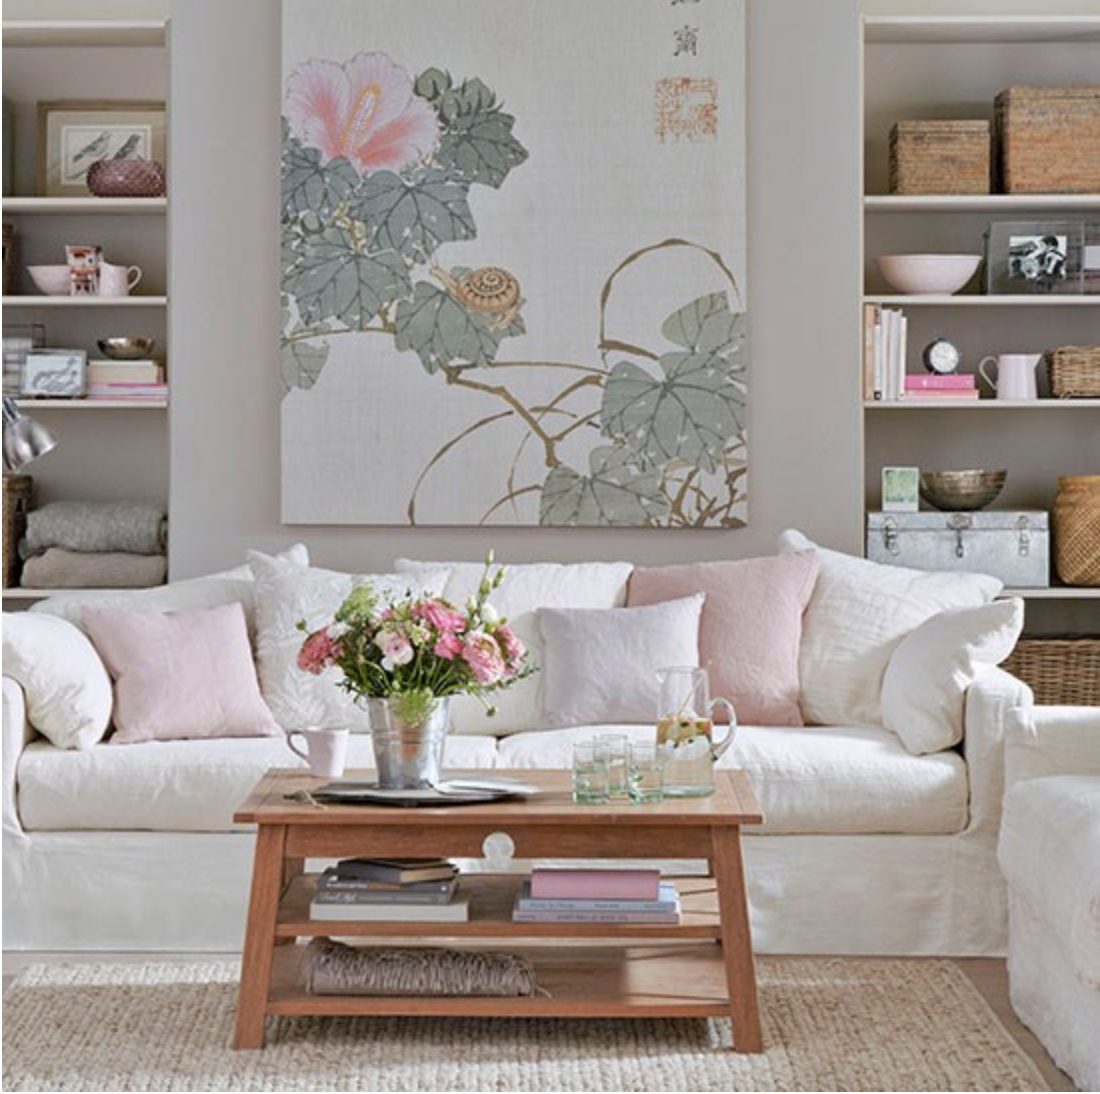 Salas pequenas romanticas e muito charmosas decorandoonline for Grey living room inspiration